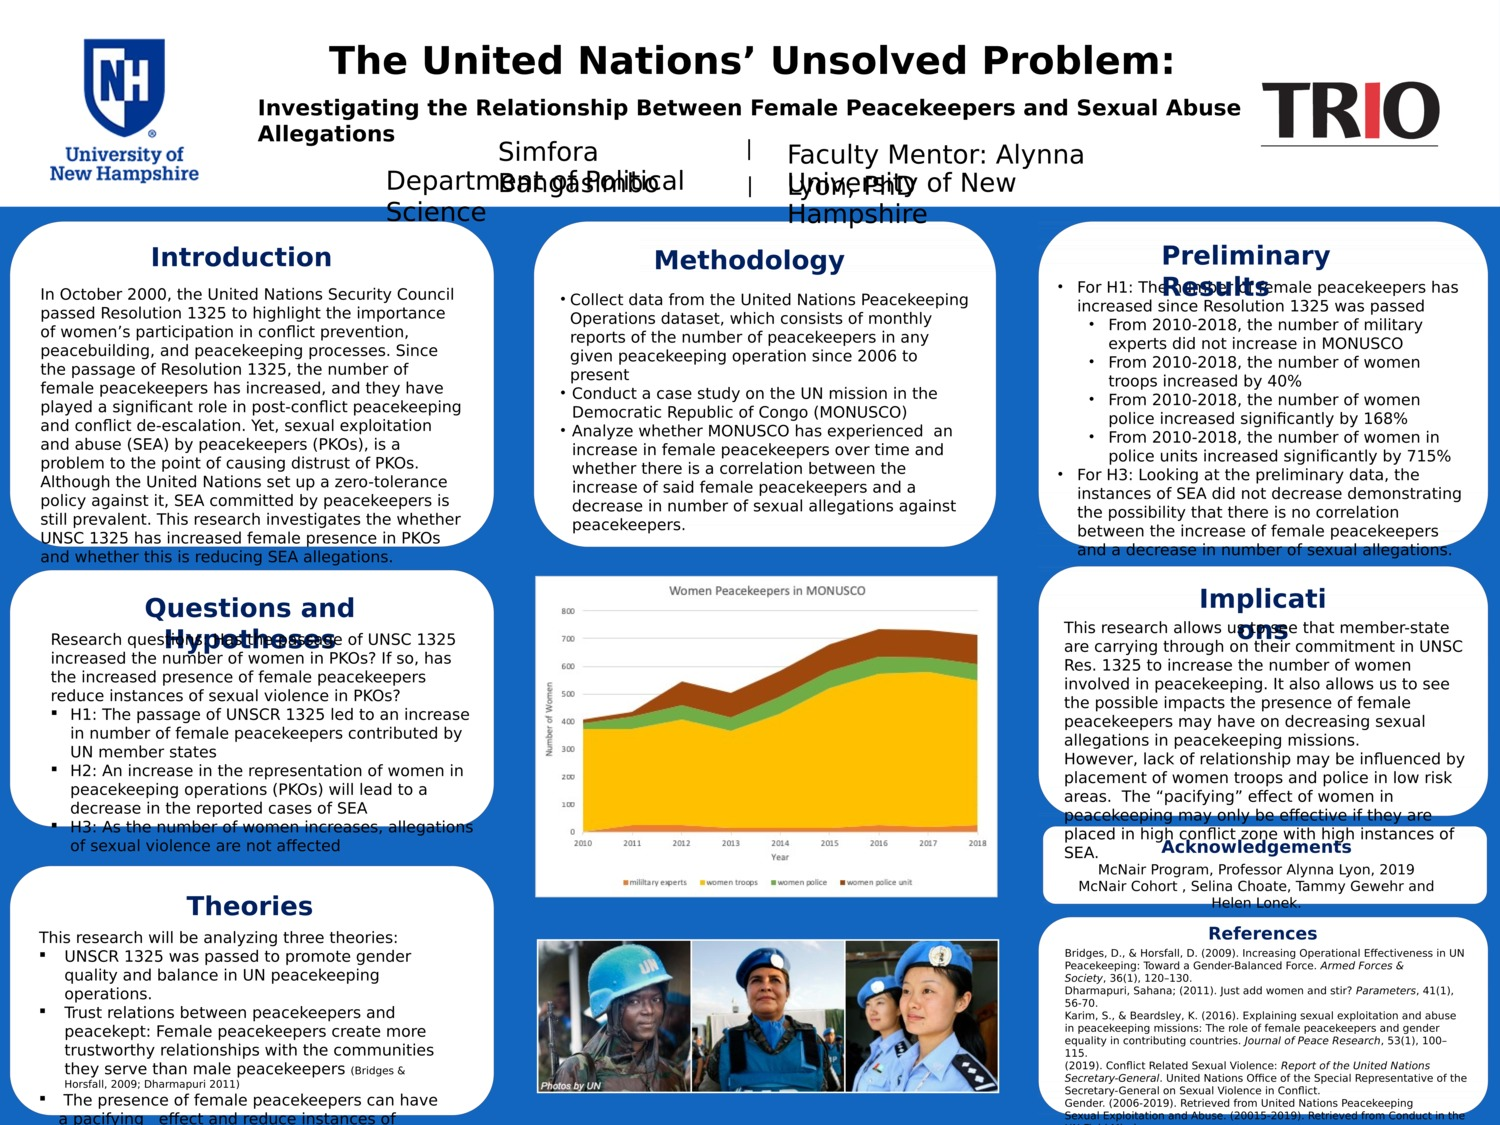 The United Nations' Unsolved Problem: Investigating The Relationship Between Female Peacekeepers And Sexual Abuse Allegations by sdb1014